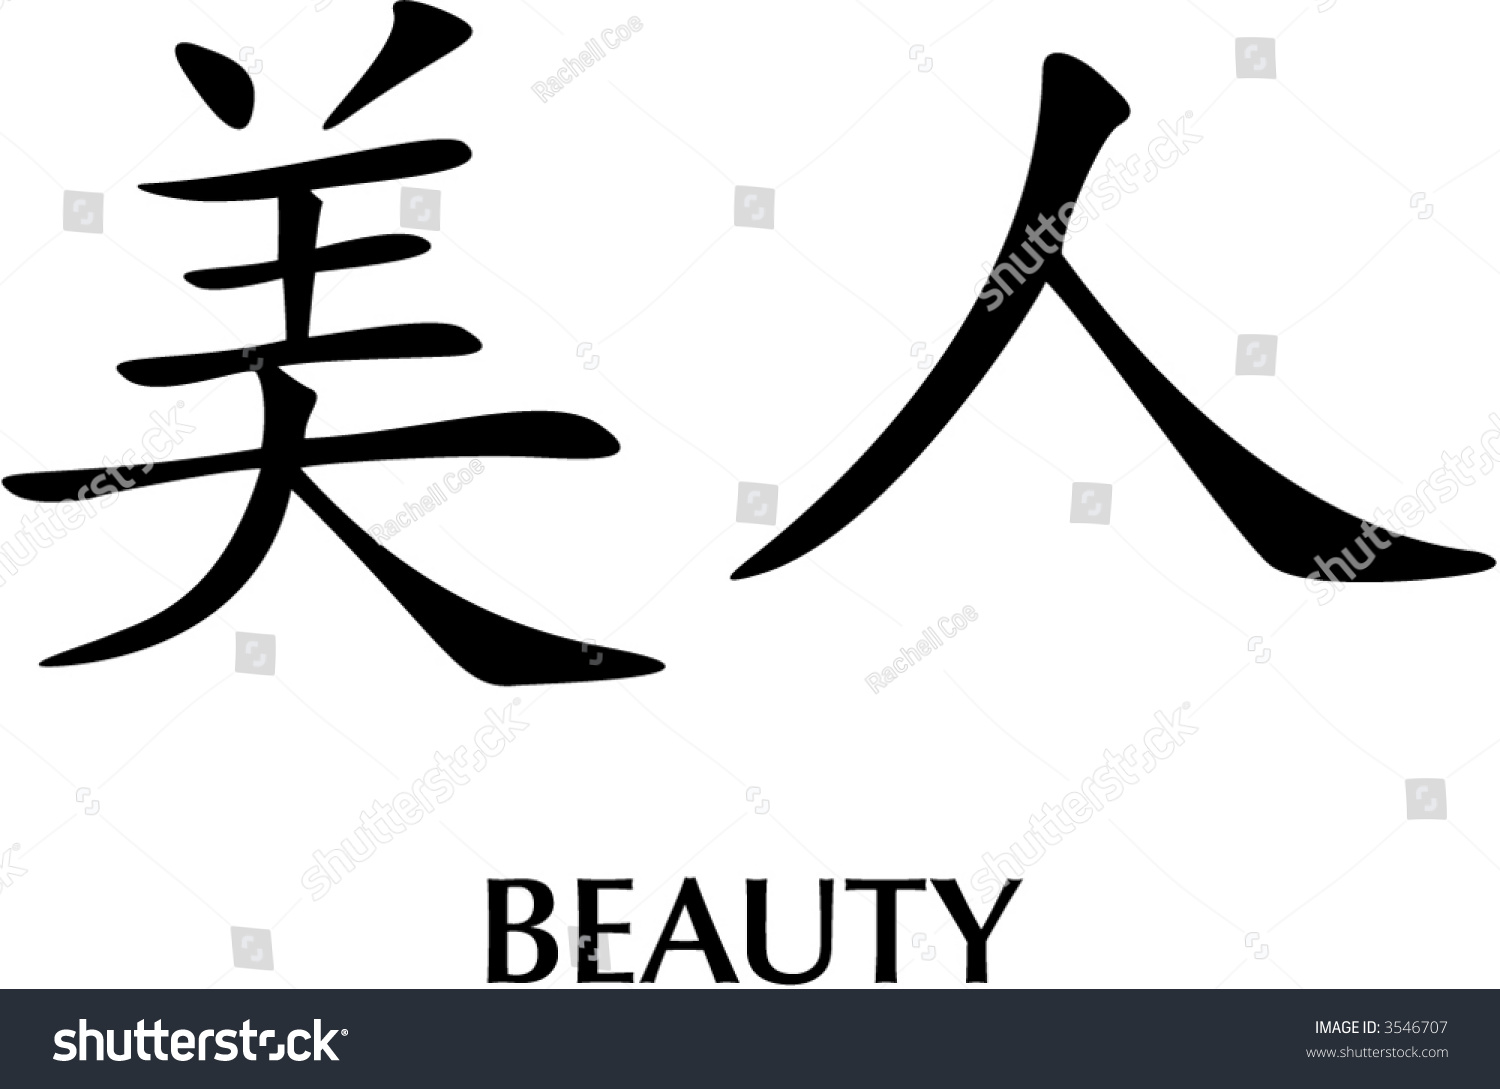 Chinese symbols beauty images symbol and sign ideas vector illustration chinese character meaning beauty stock vector vector illustration of the chinese character meaning beauty biocorpaavc Image collections